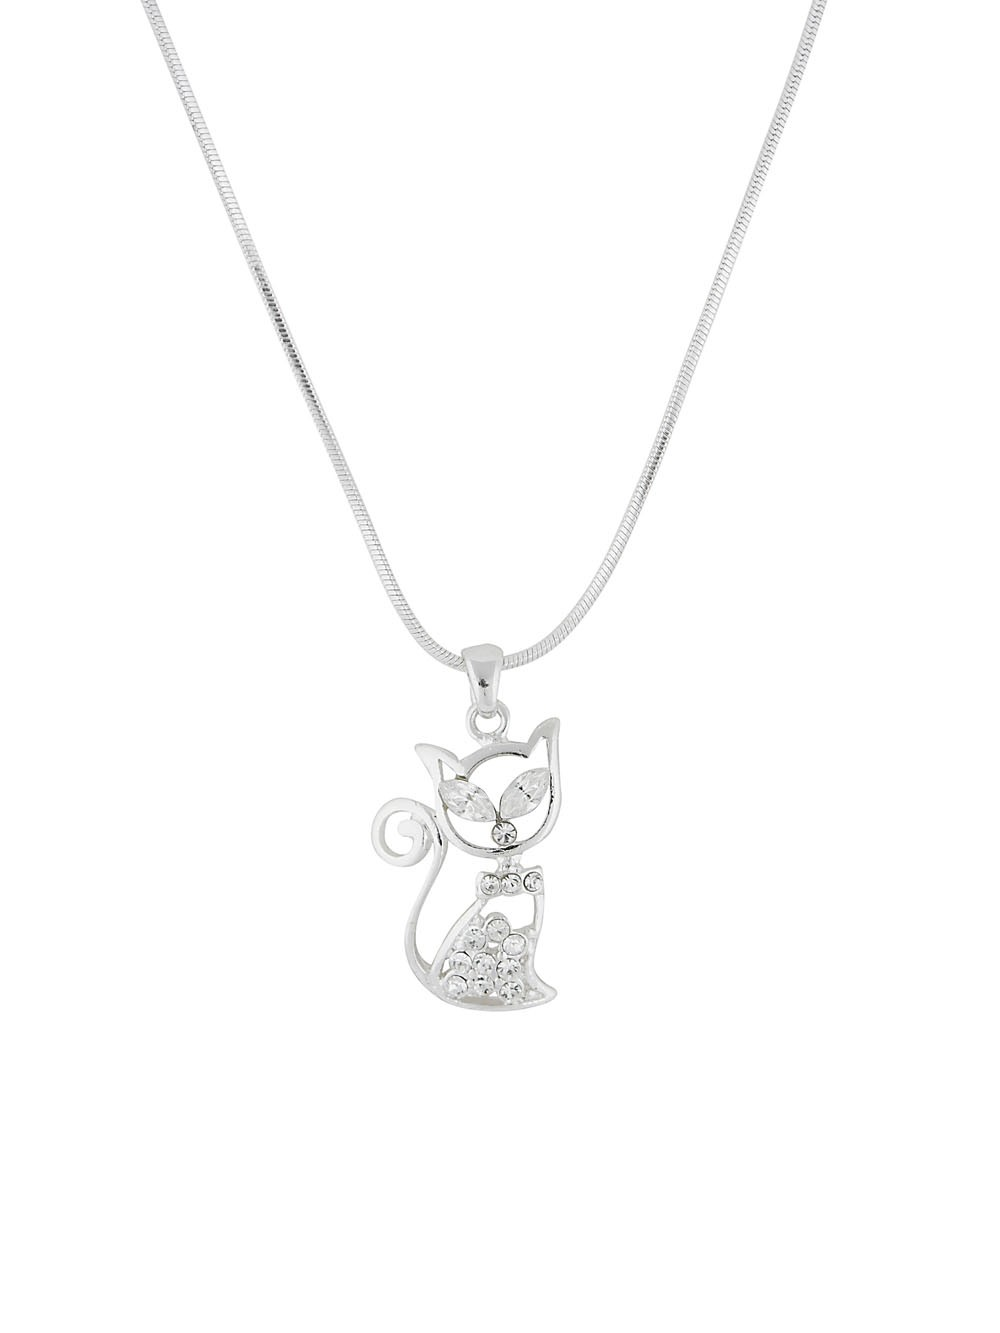 Silver Tone Cat Pendant with Rhinestone Detailing